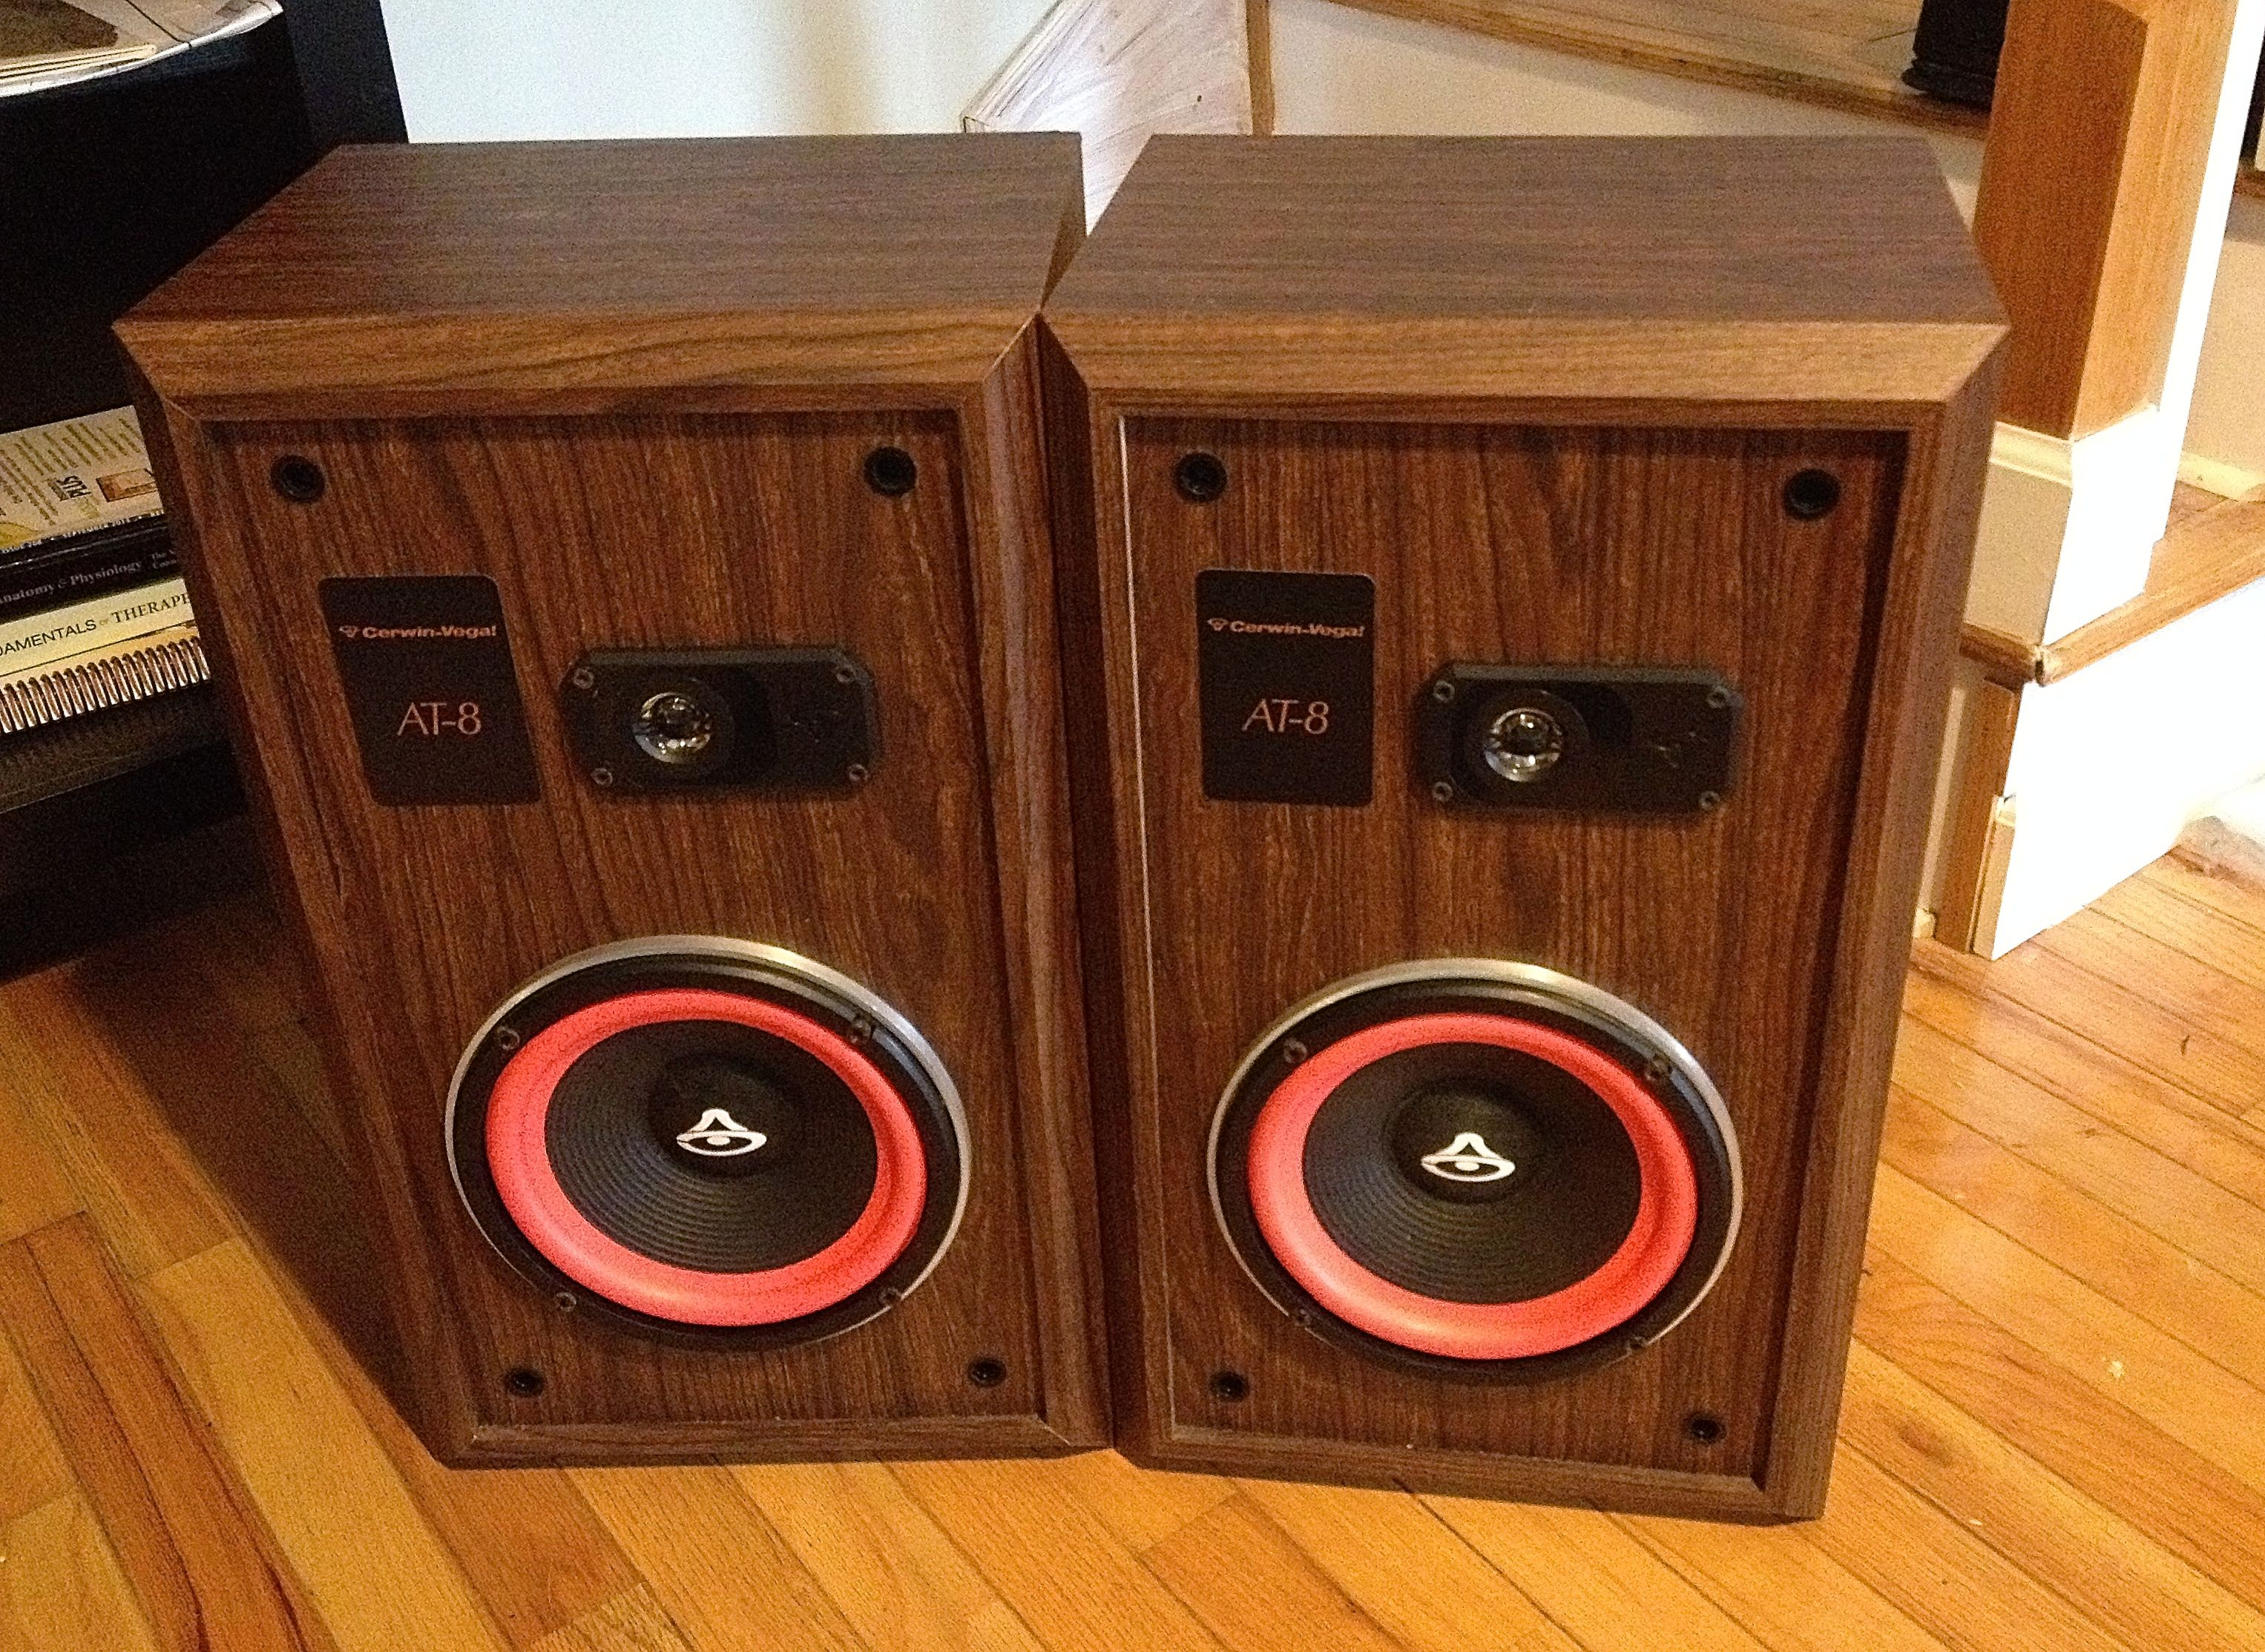 Cerwin Vega AT 8 Floor Bookshelf Speakers Made In The Early 90s Took Grilles Off So You Could See Trademark Orange Speaker Surrounds